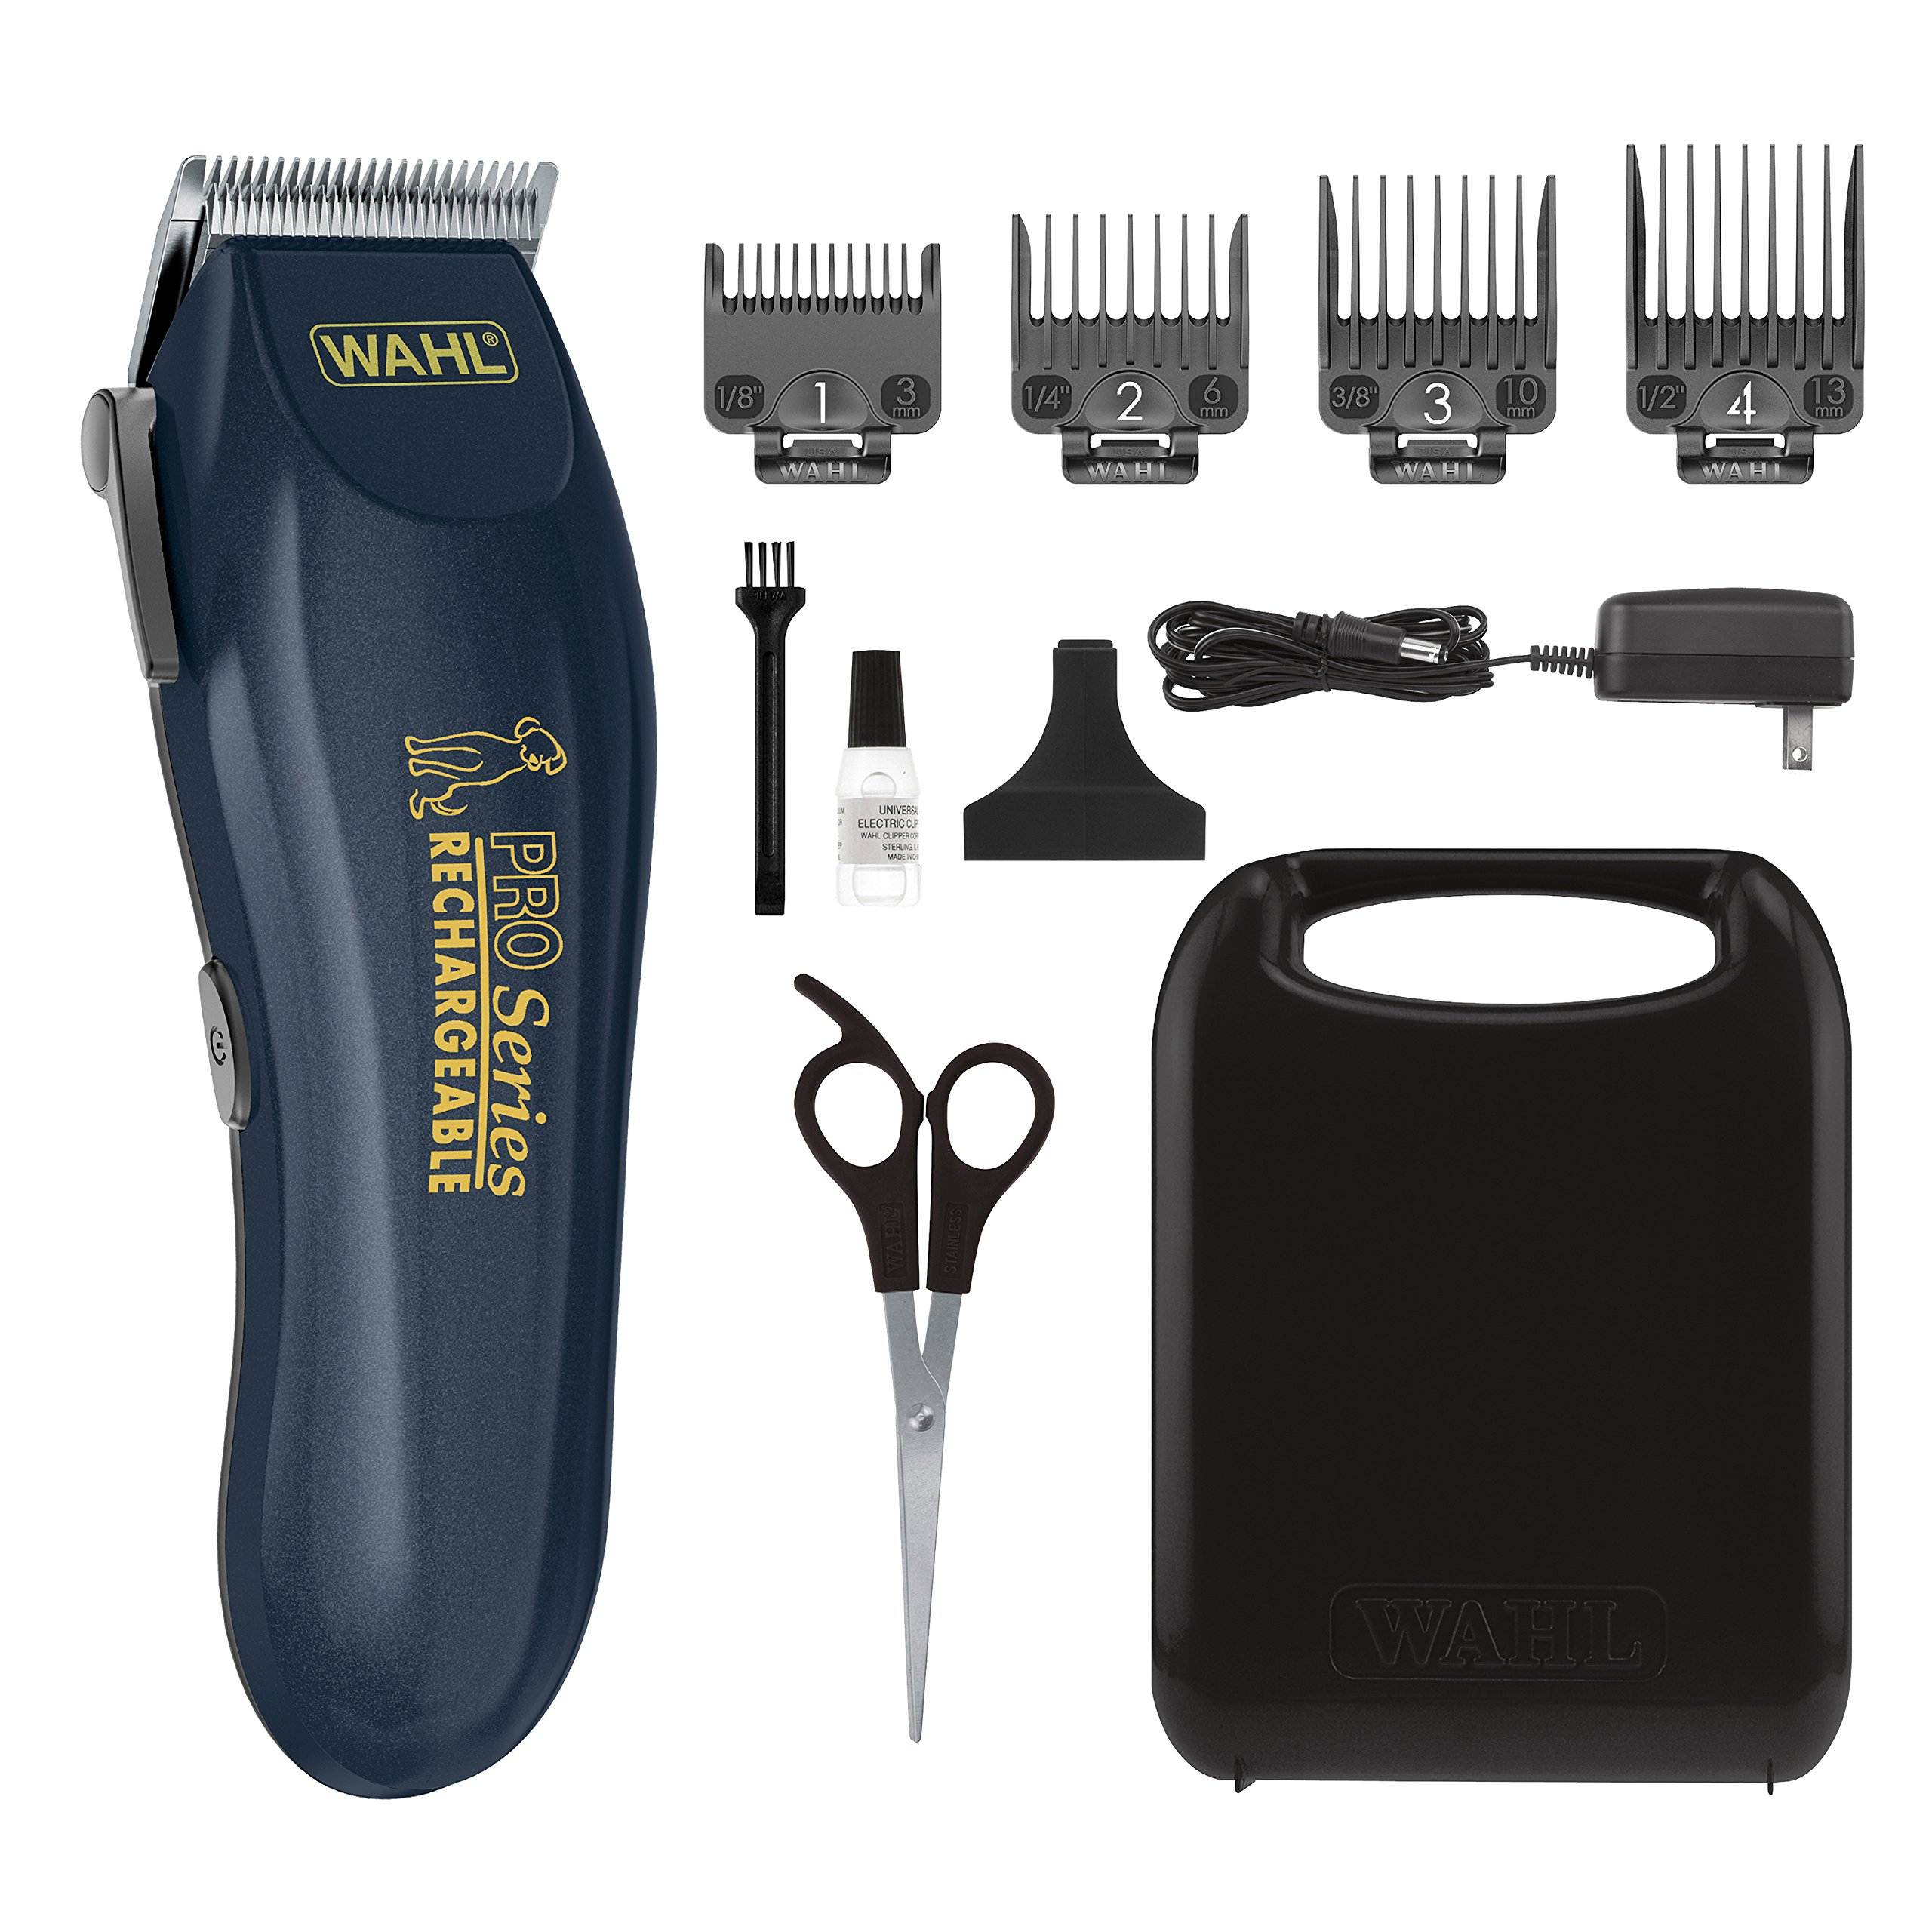 WAHL Clipper Lithium Ion Deluxe Pro Series Rechargeable Pet Grooming Kit - Low Noise Cordless Electric Shaver for Dog & Cat Trimming with Heavy Duty Motor - Model 9591-2100 by WAHL